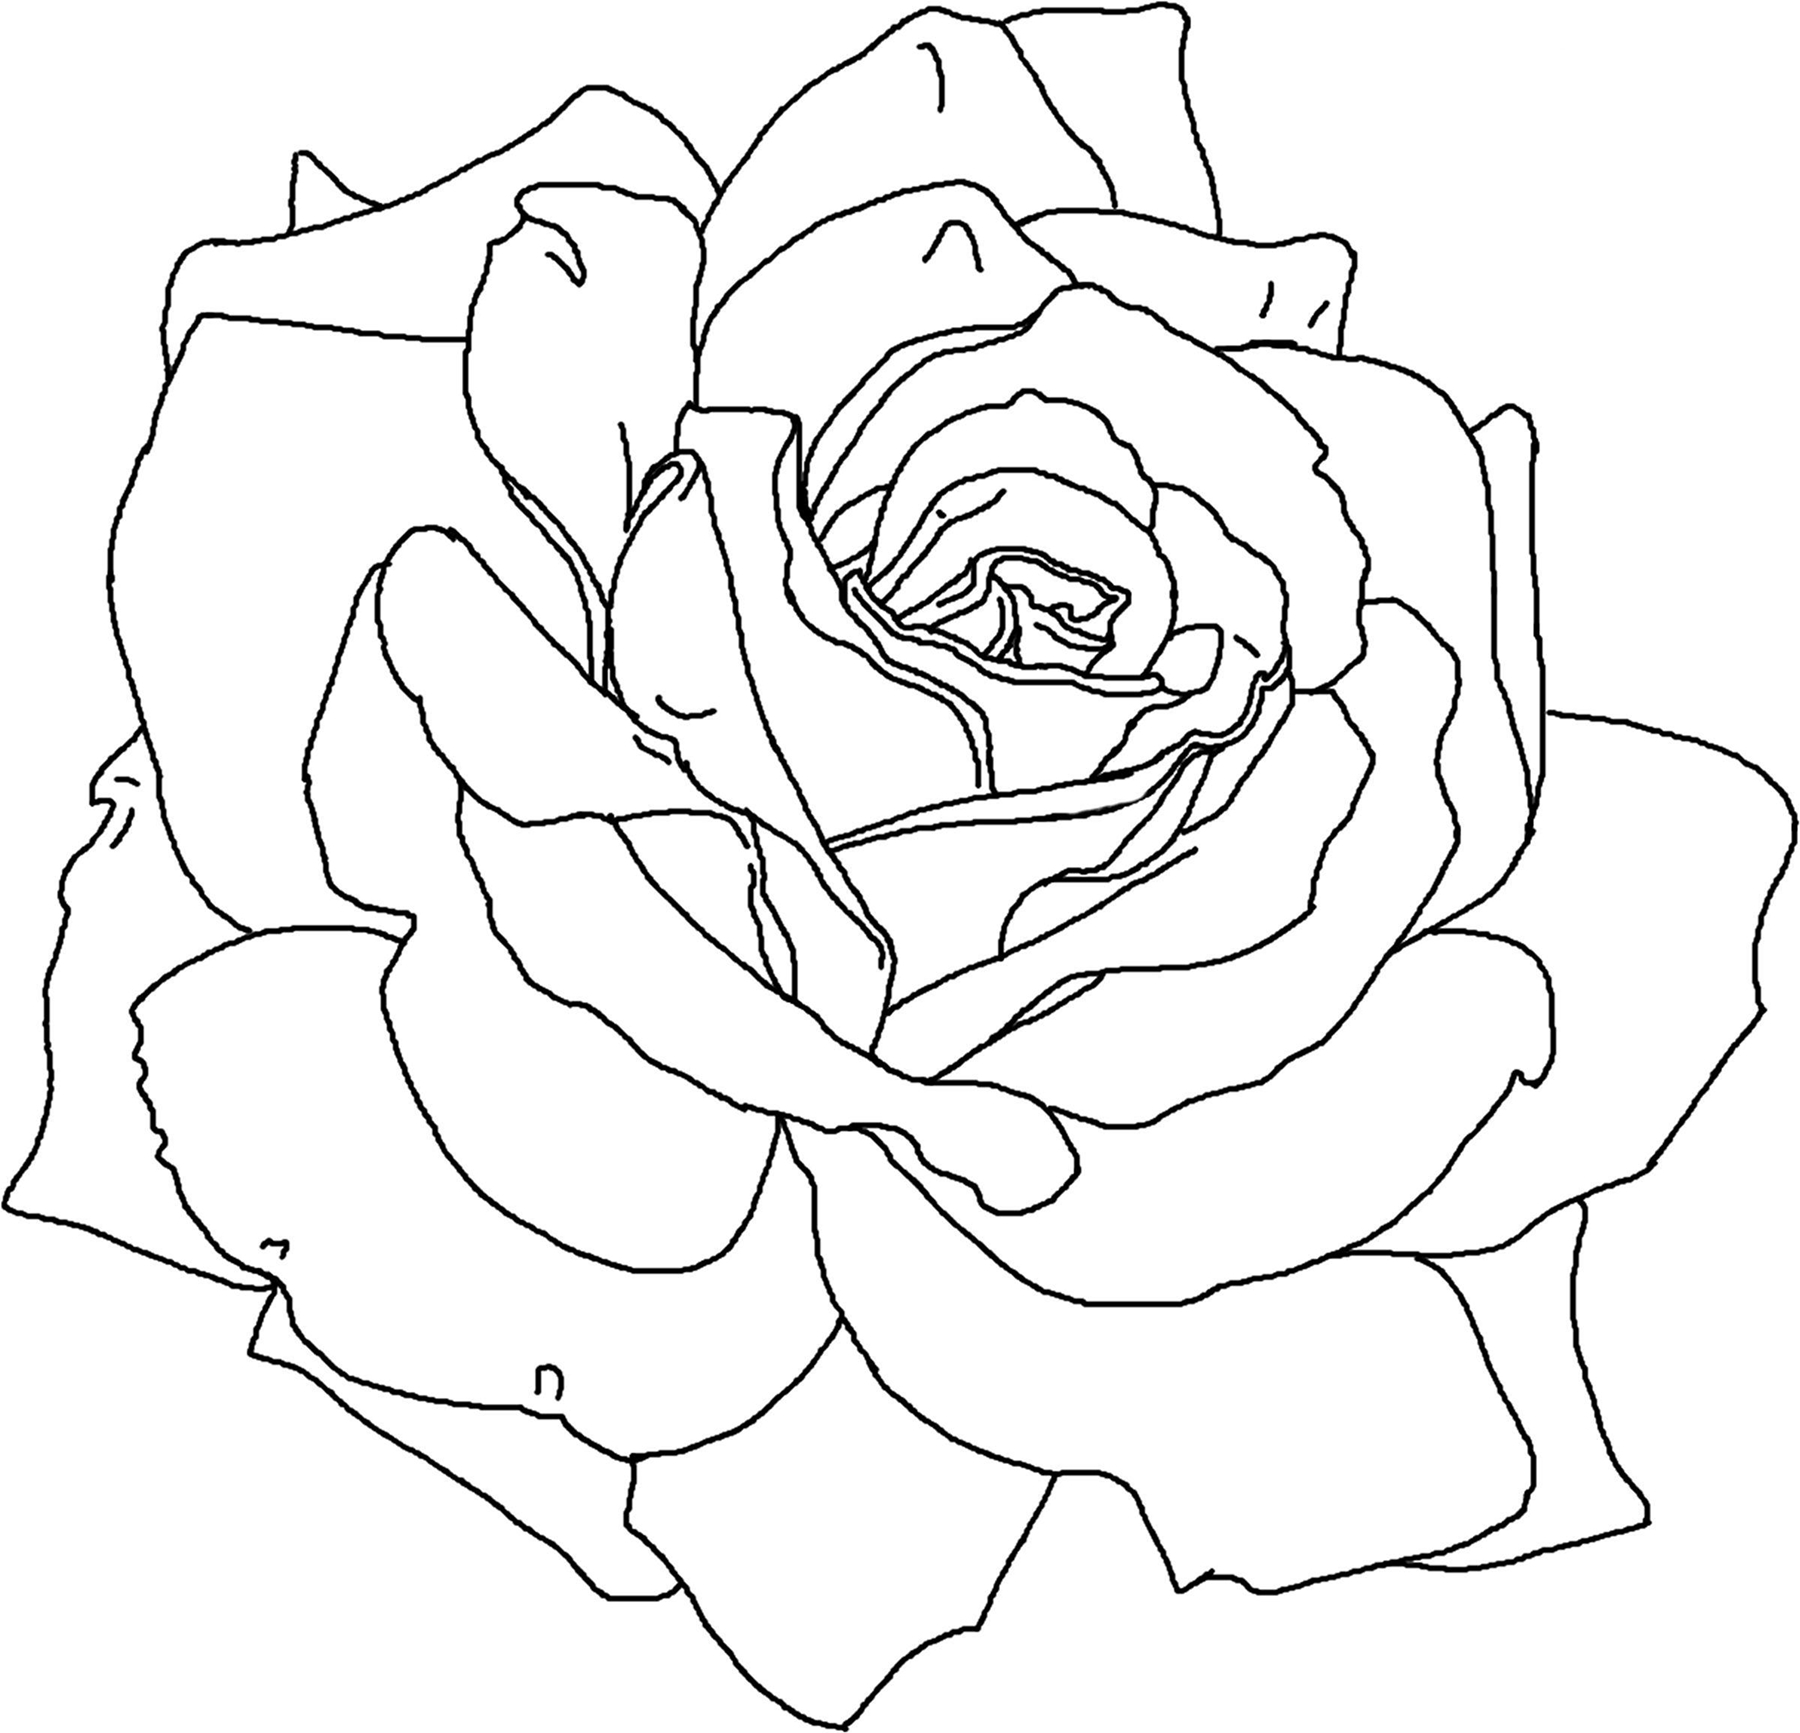 childrens coloring pages flowers free printable flower coloring pages for kids best coloring childrens pages flowers 1 1